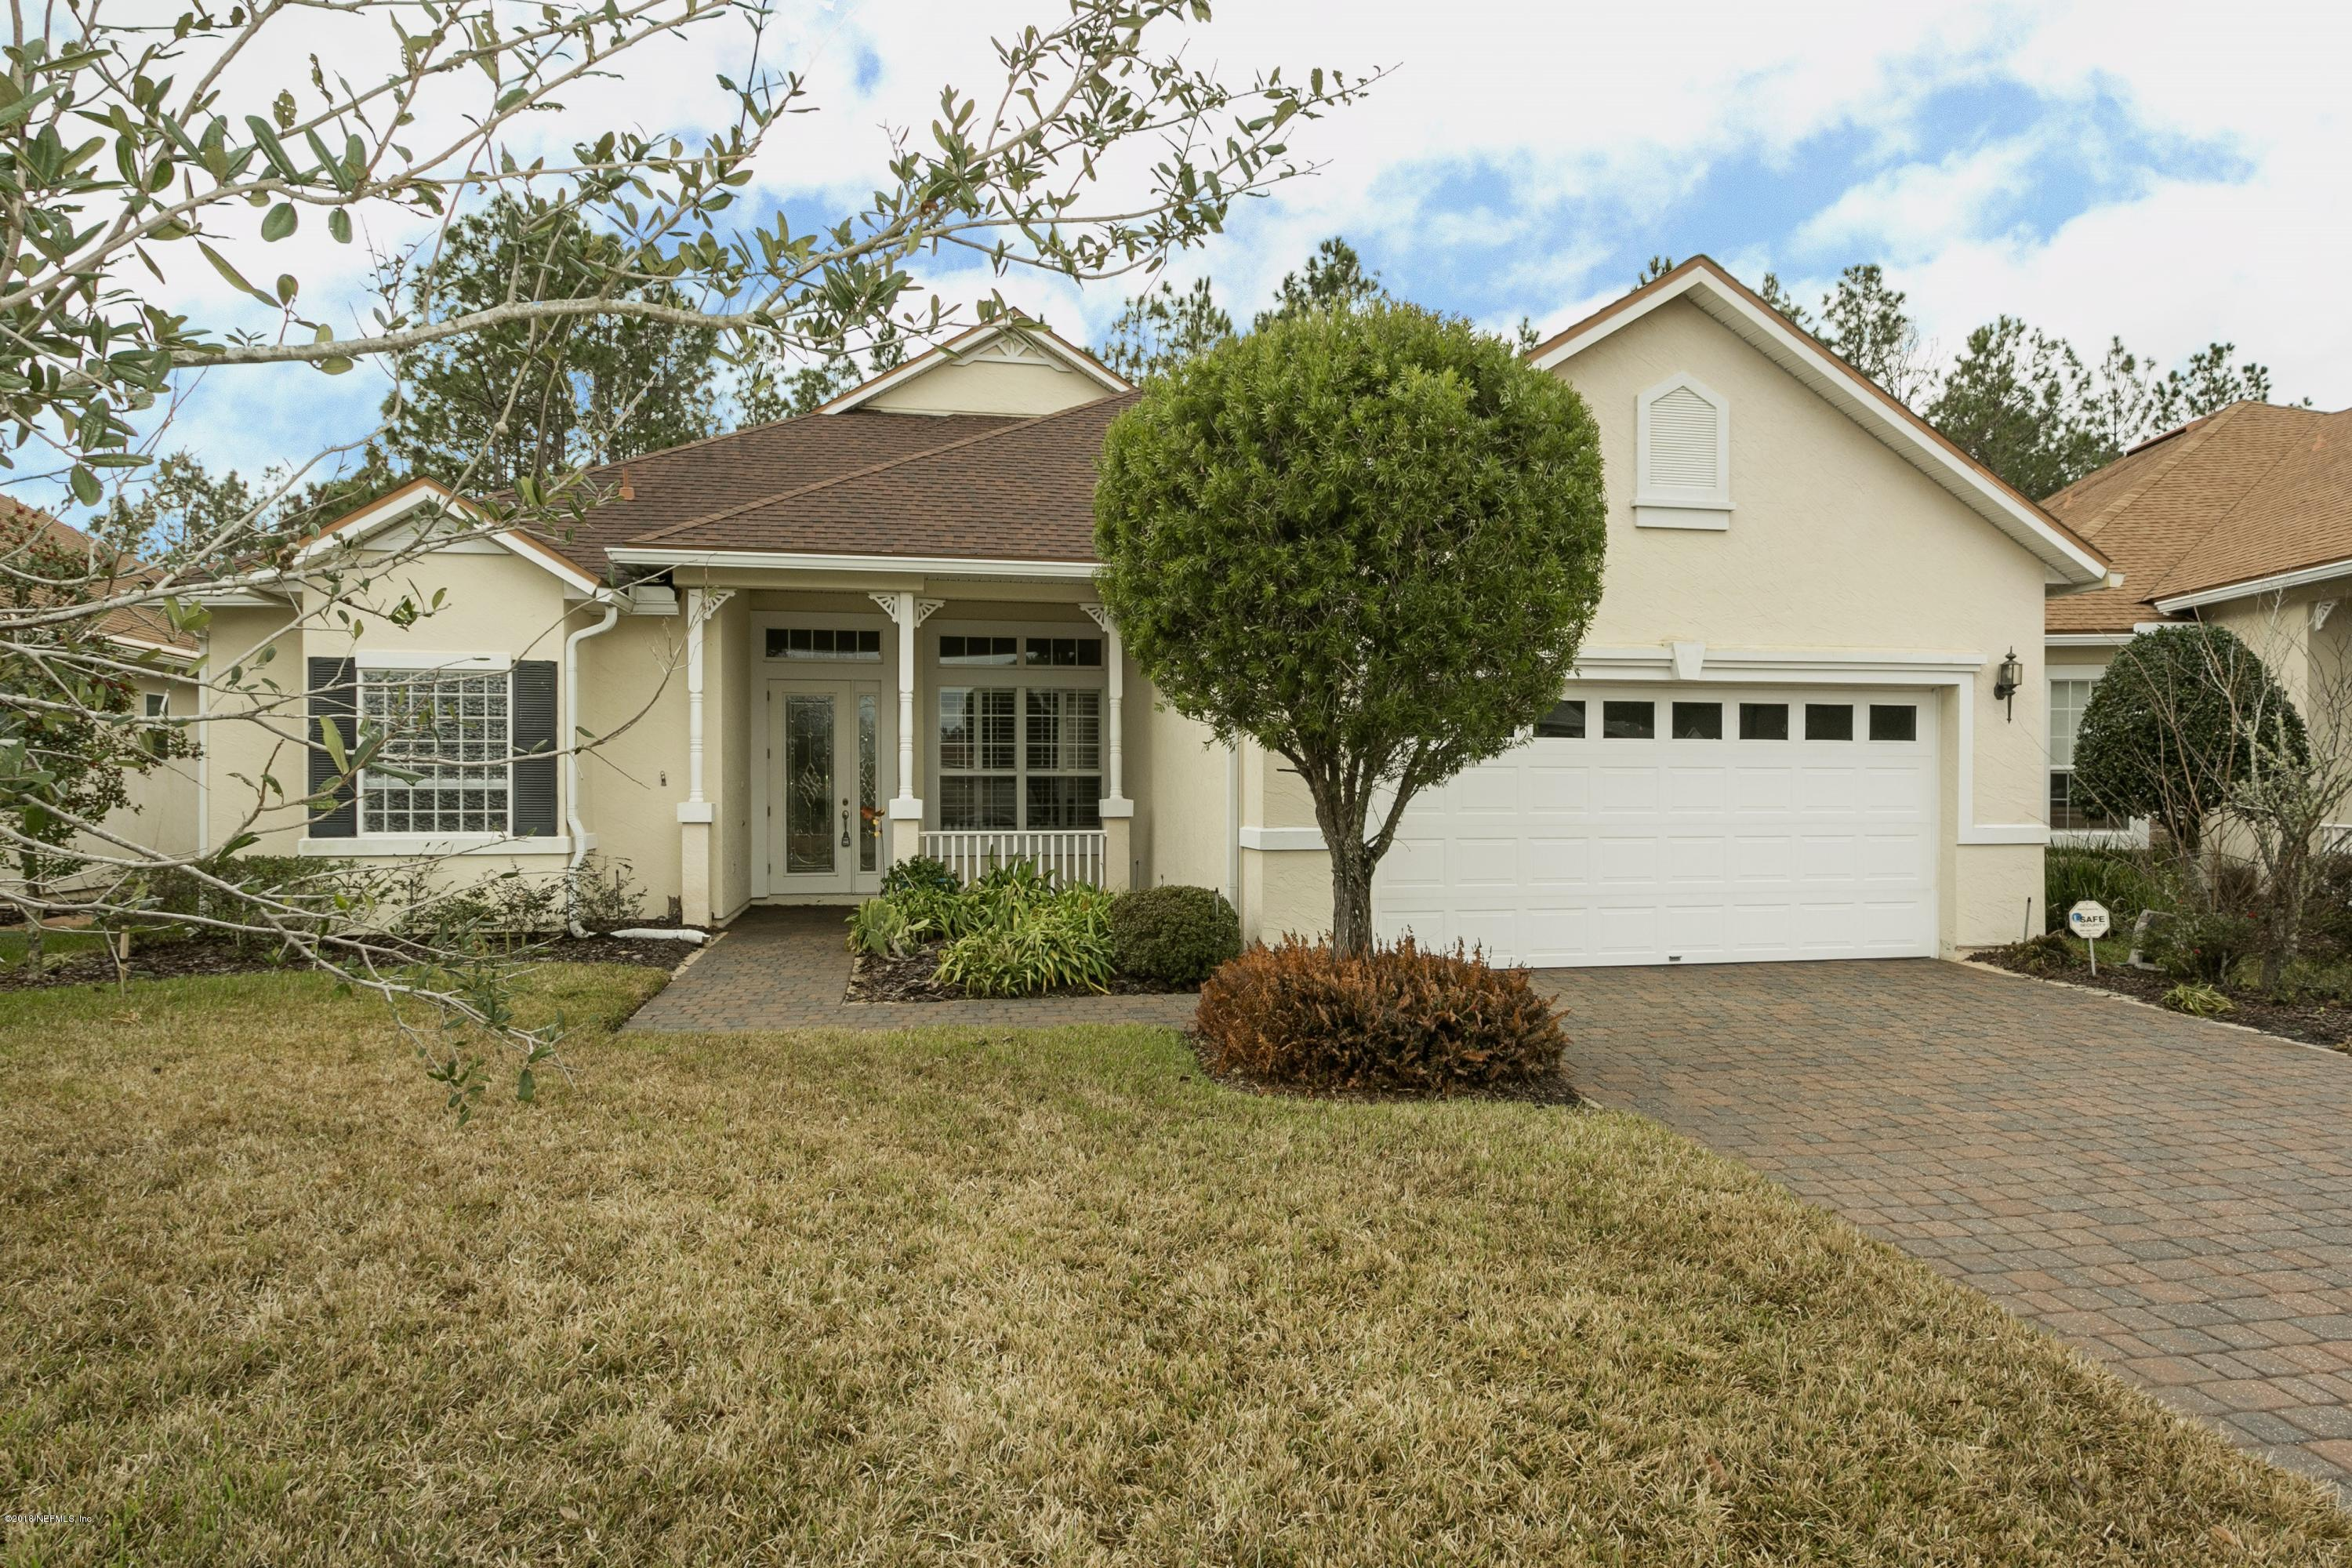 1037 INVERNESS, ST AUGUSTINE, FLORIDA 32092, 3 Bedrooms Bedrooms, ,2 BathroomsBathrooms,Residential - single family,For sale,INVERNESS,967507